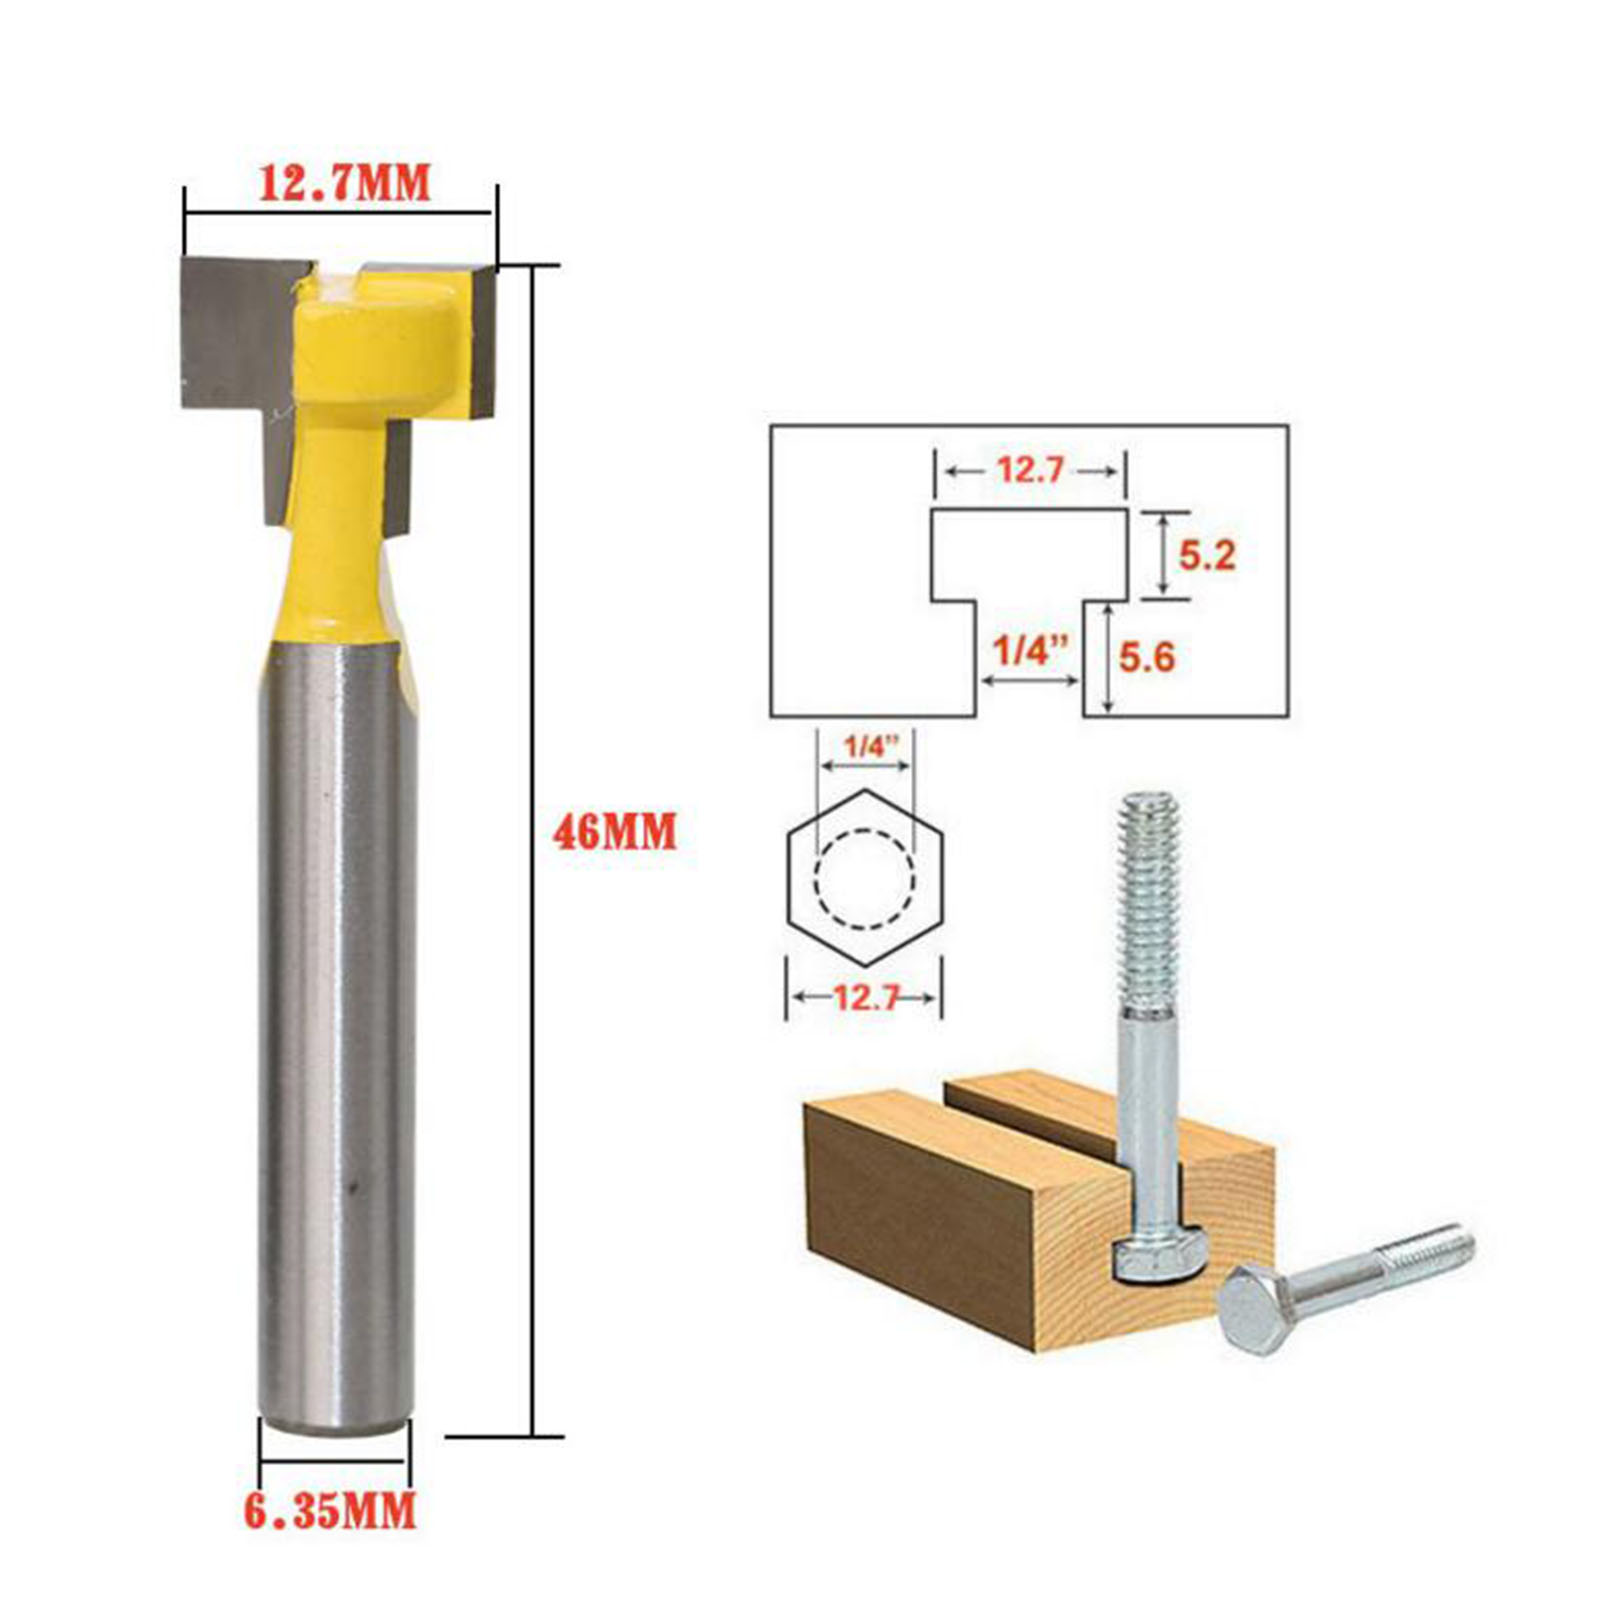 DRELD 1pc Woodworking Tool 1/4 Inch Shank Carbide T Slot Lock Hole Cutter Router Bit Wood Milling Cutter Tool 1/2inch Diameter carbide tipped t slot cutter welding carbide t cutter welded carbide t cutter 32mm x 4 5 6 8 10 12 14mm